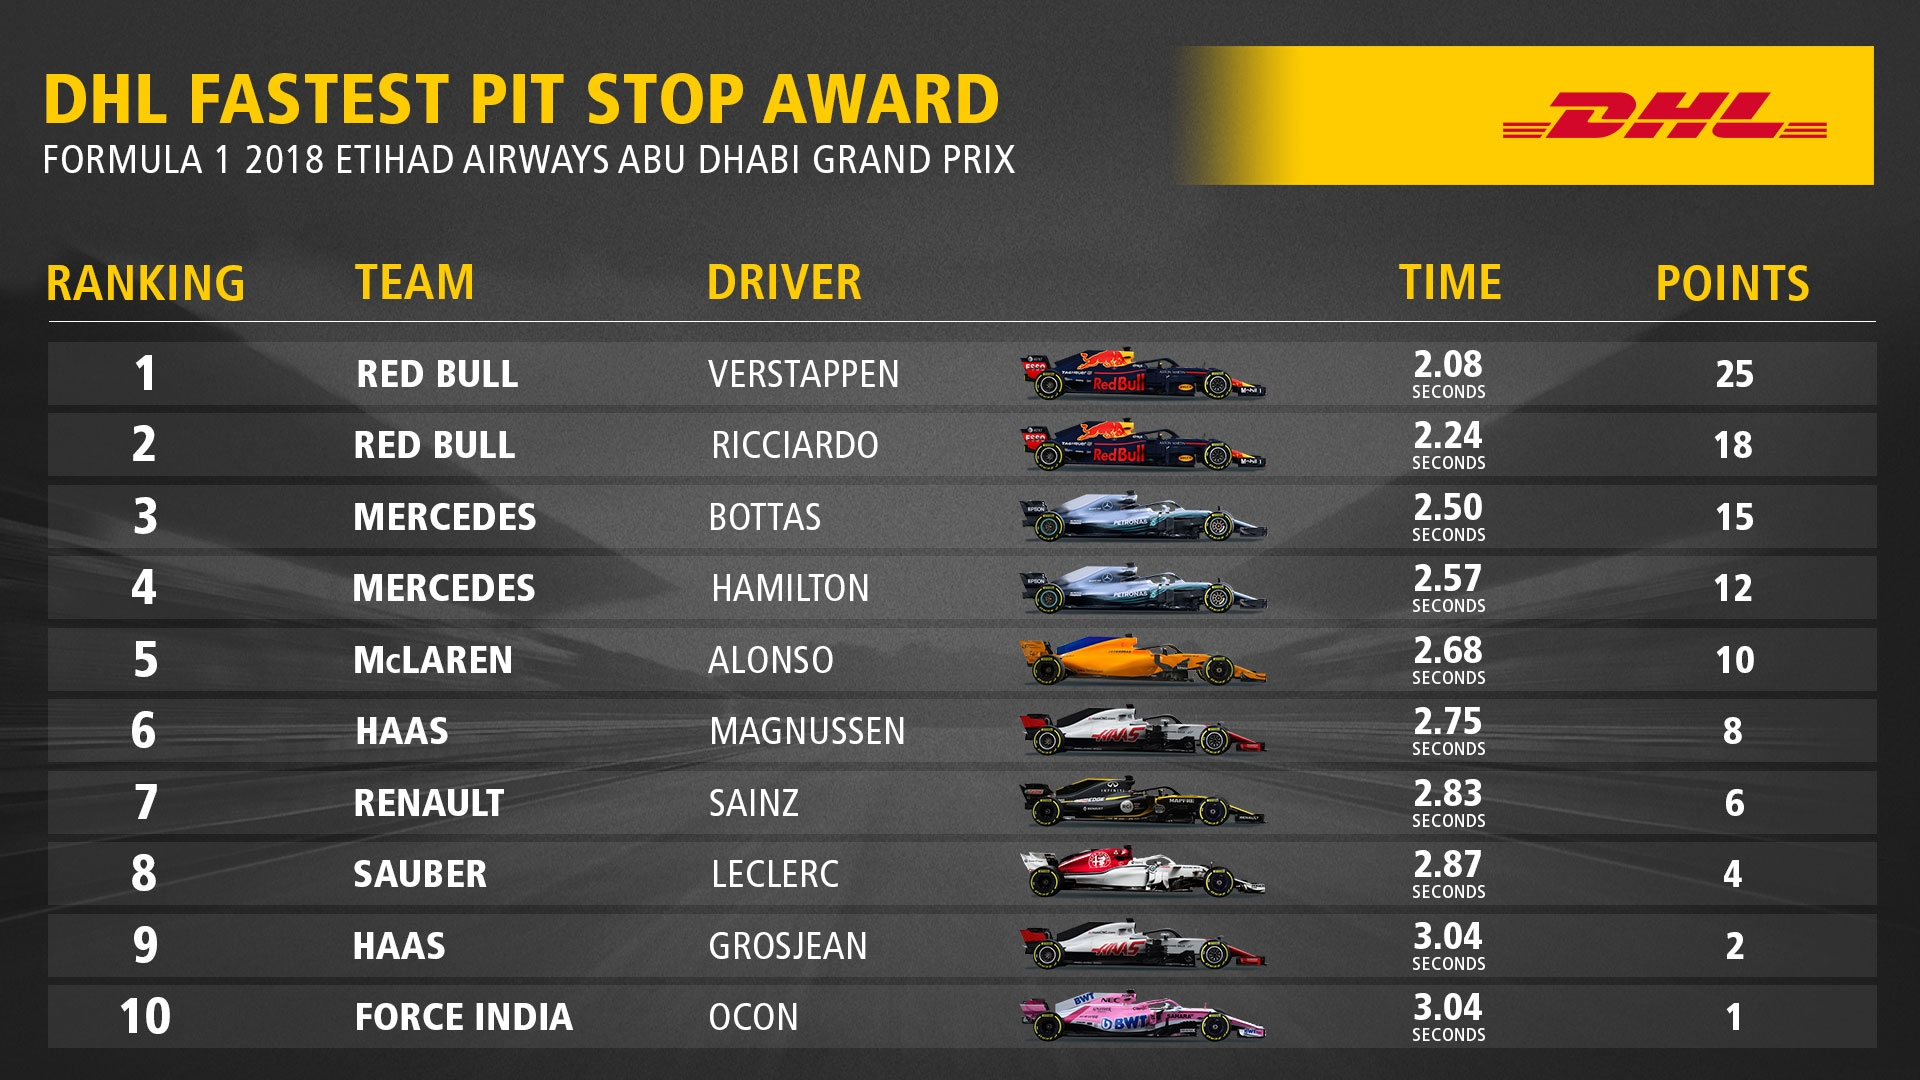 2018 DHL Fastest Pit Stop Award